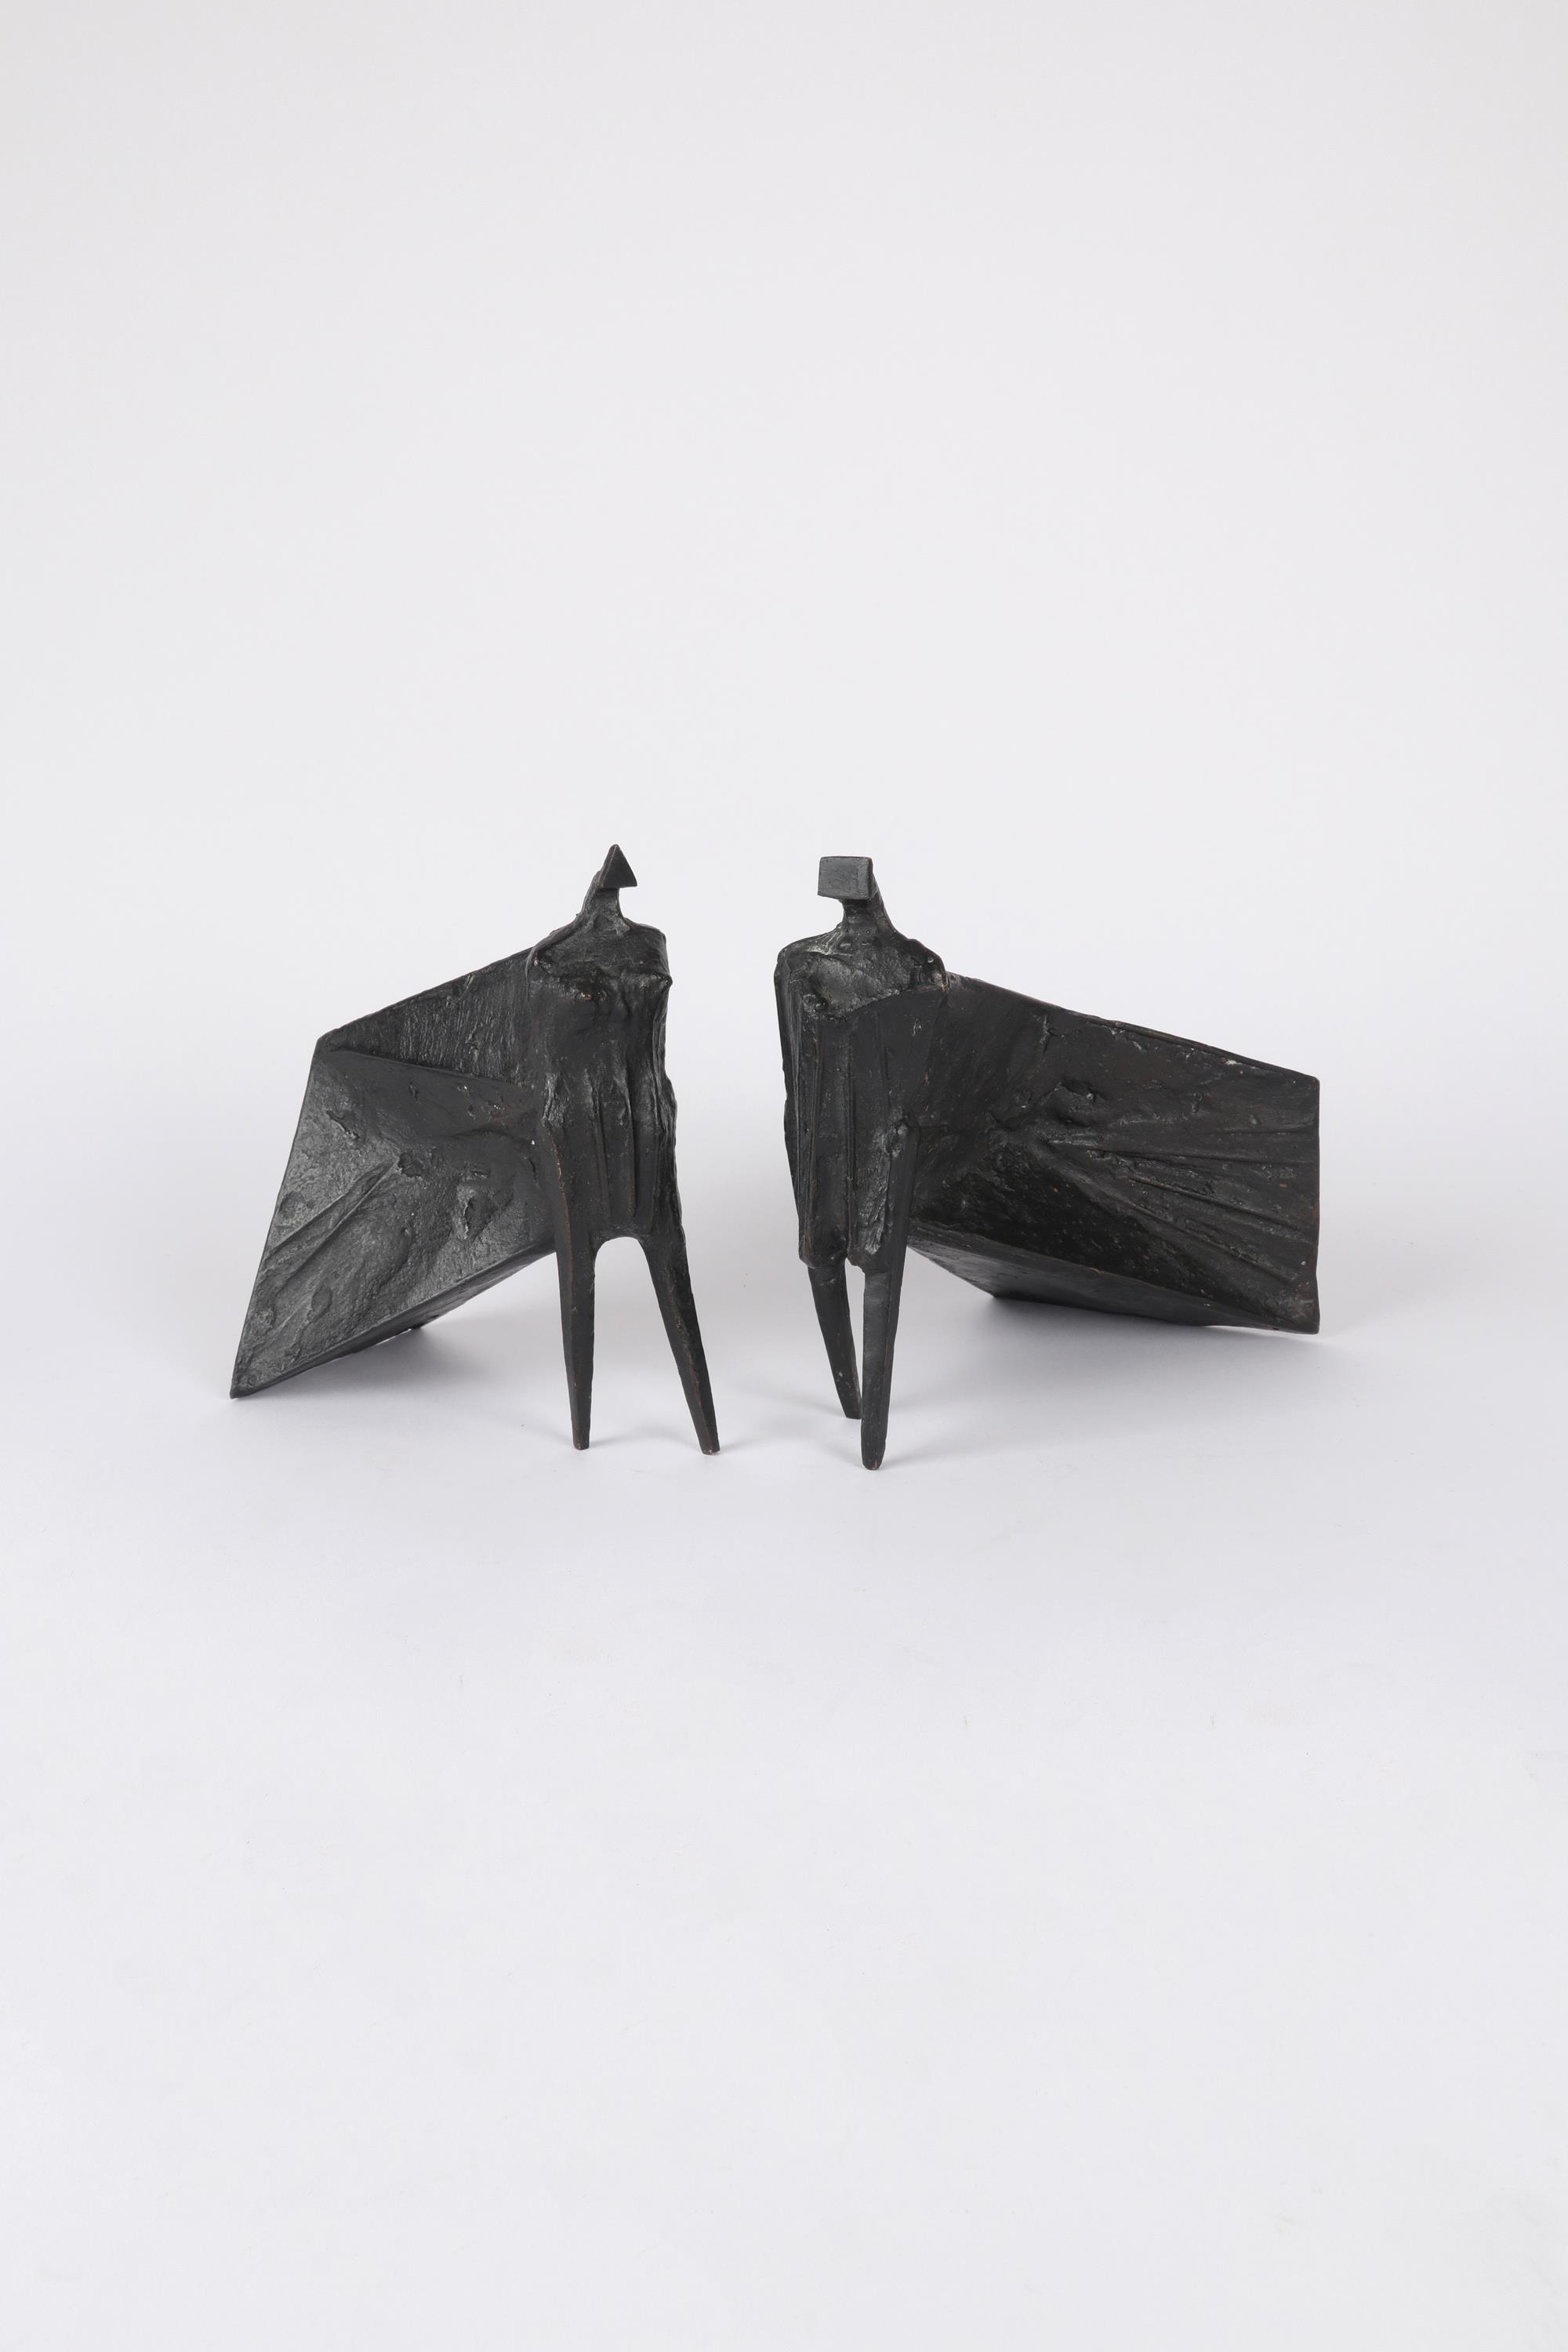 ‡Lynn Chadwick CBE, RA (1914-2003) Pair of Cloaked Figures III Each signed dated and numbered C/77/ - Image 12 of 22